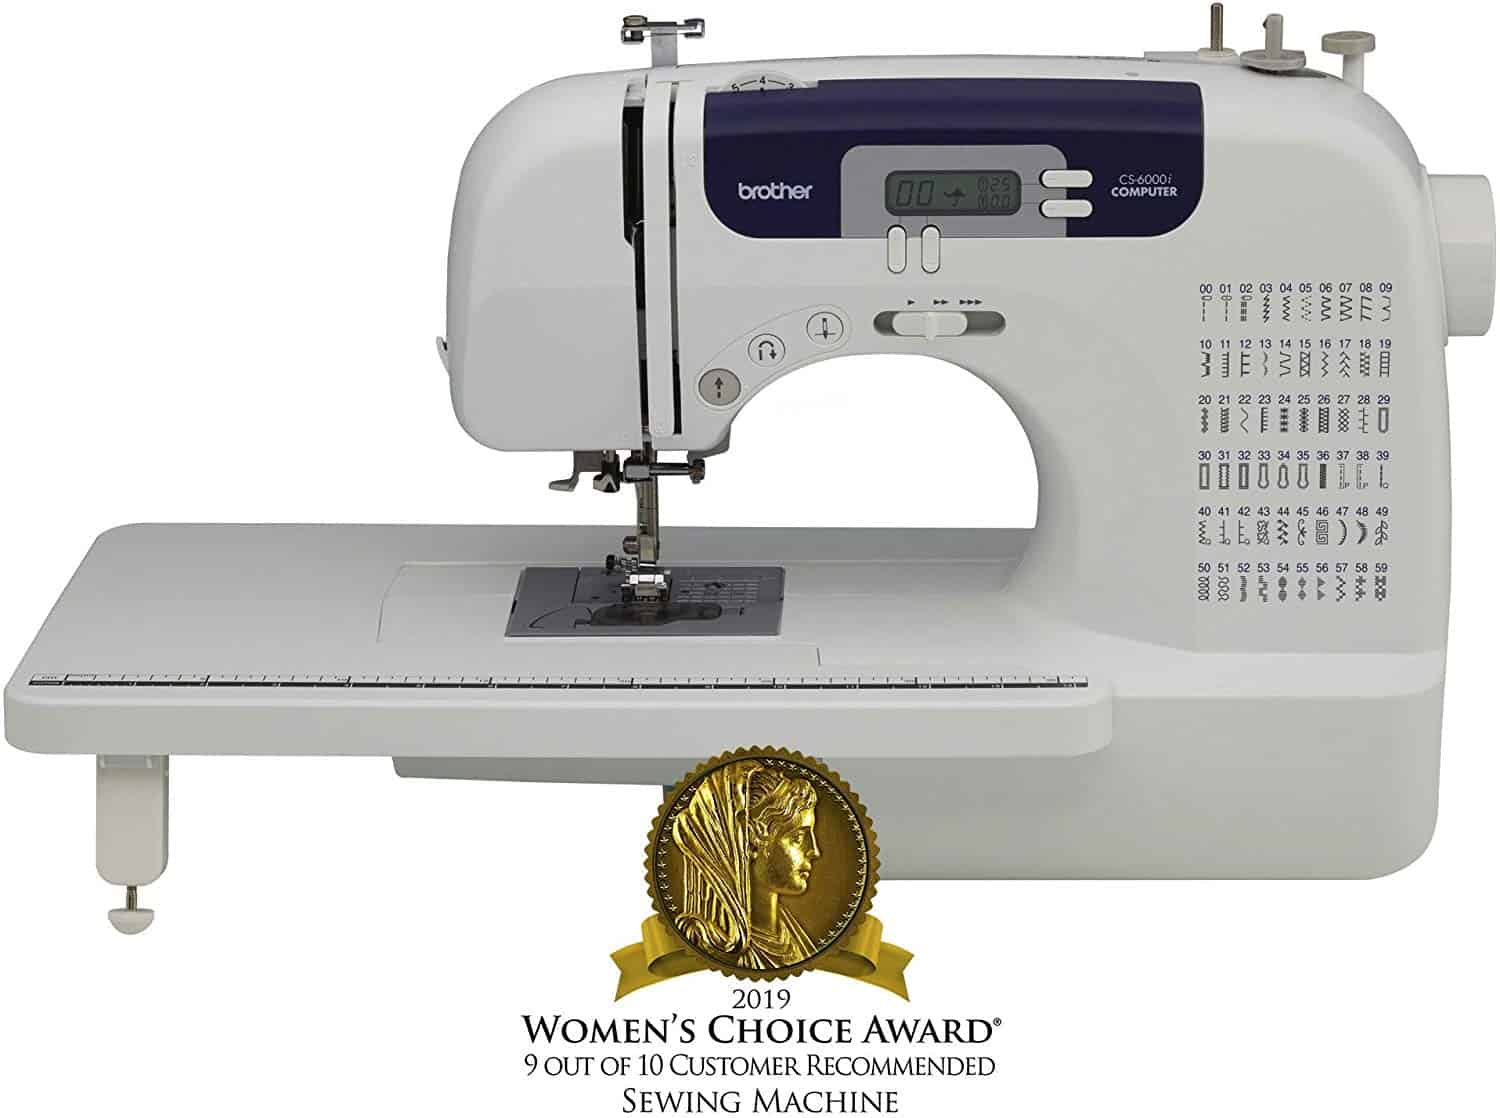 Best Sewing Machines For Beginners in 2020 | Our Top 10 ...